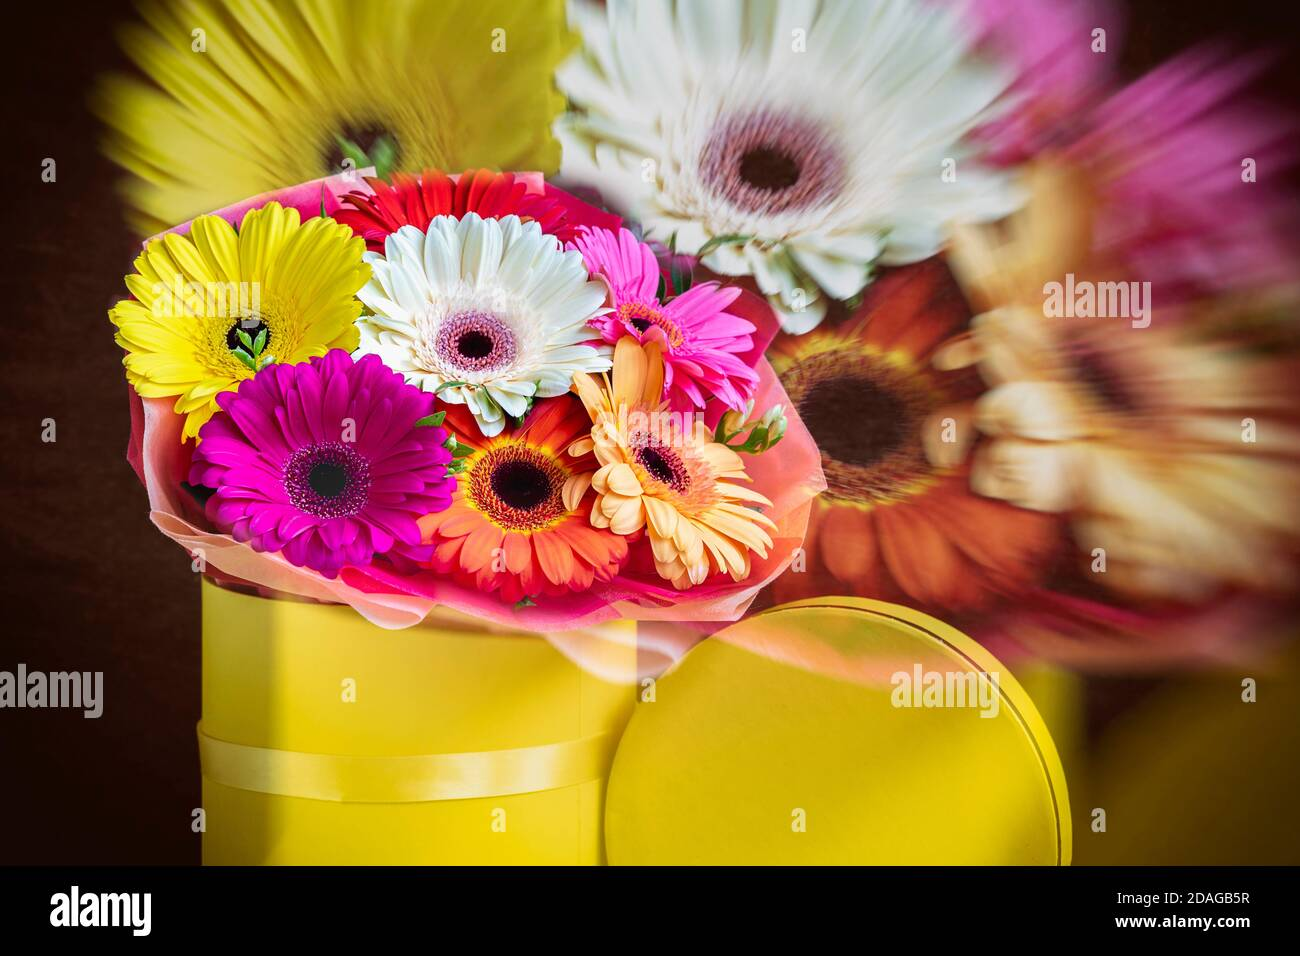 Blurred floral background, double exposure, colorful multicolored gerbera flowers in yellow box. Concept of holidays and gifts Stock Photo